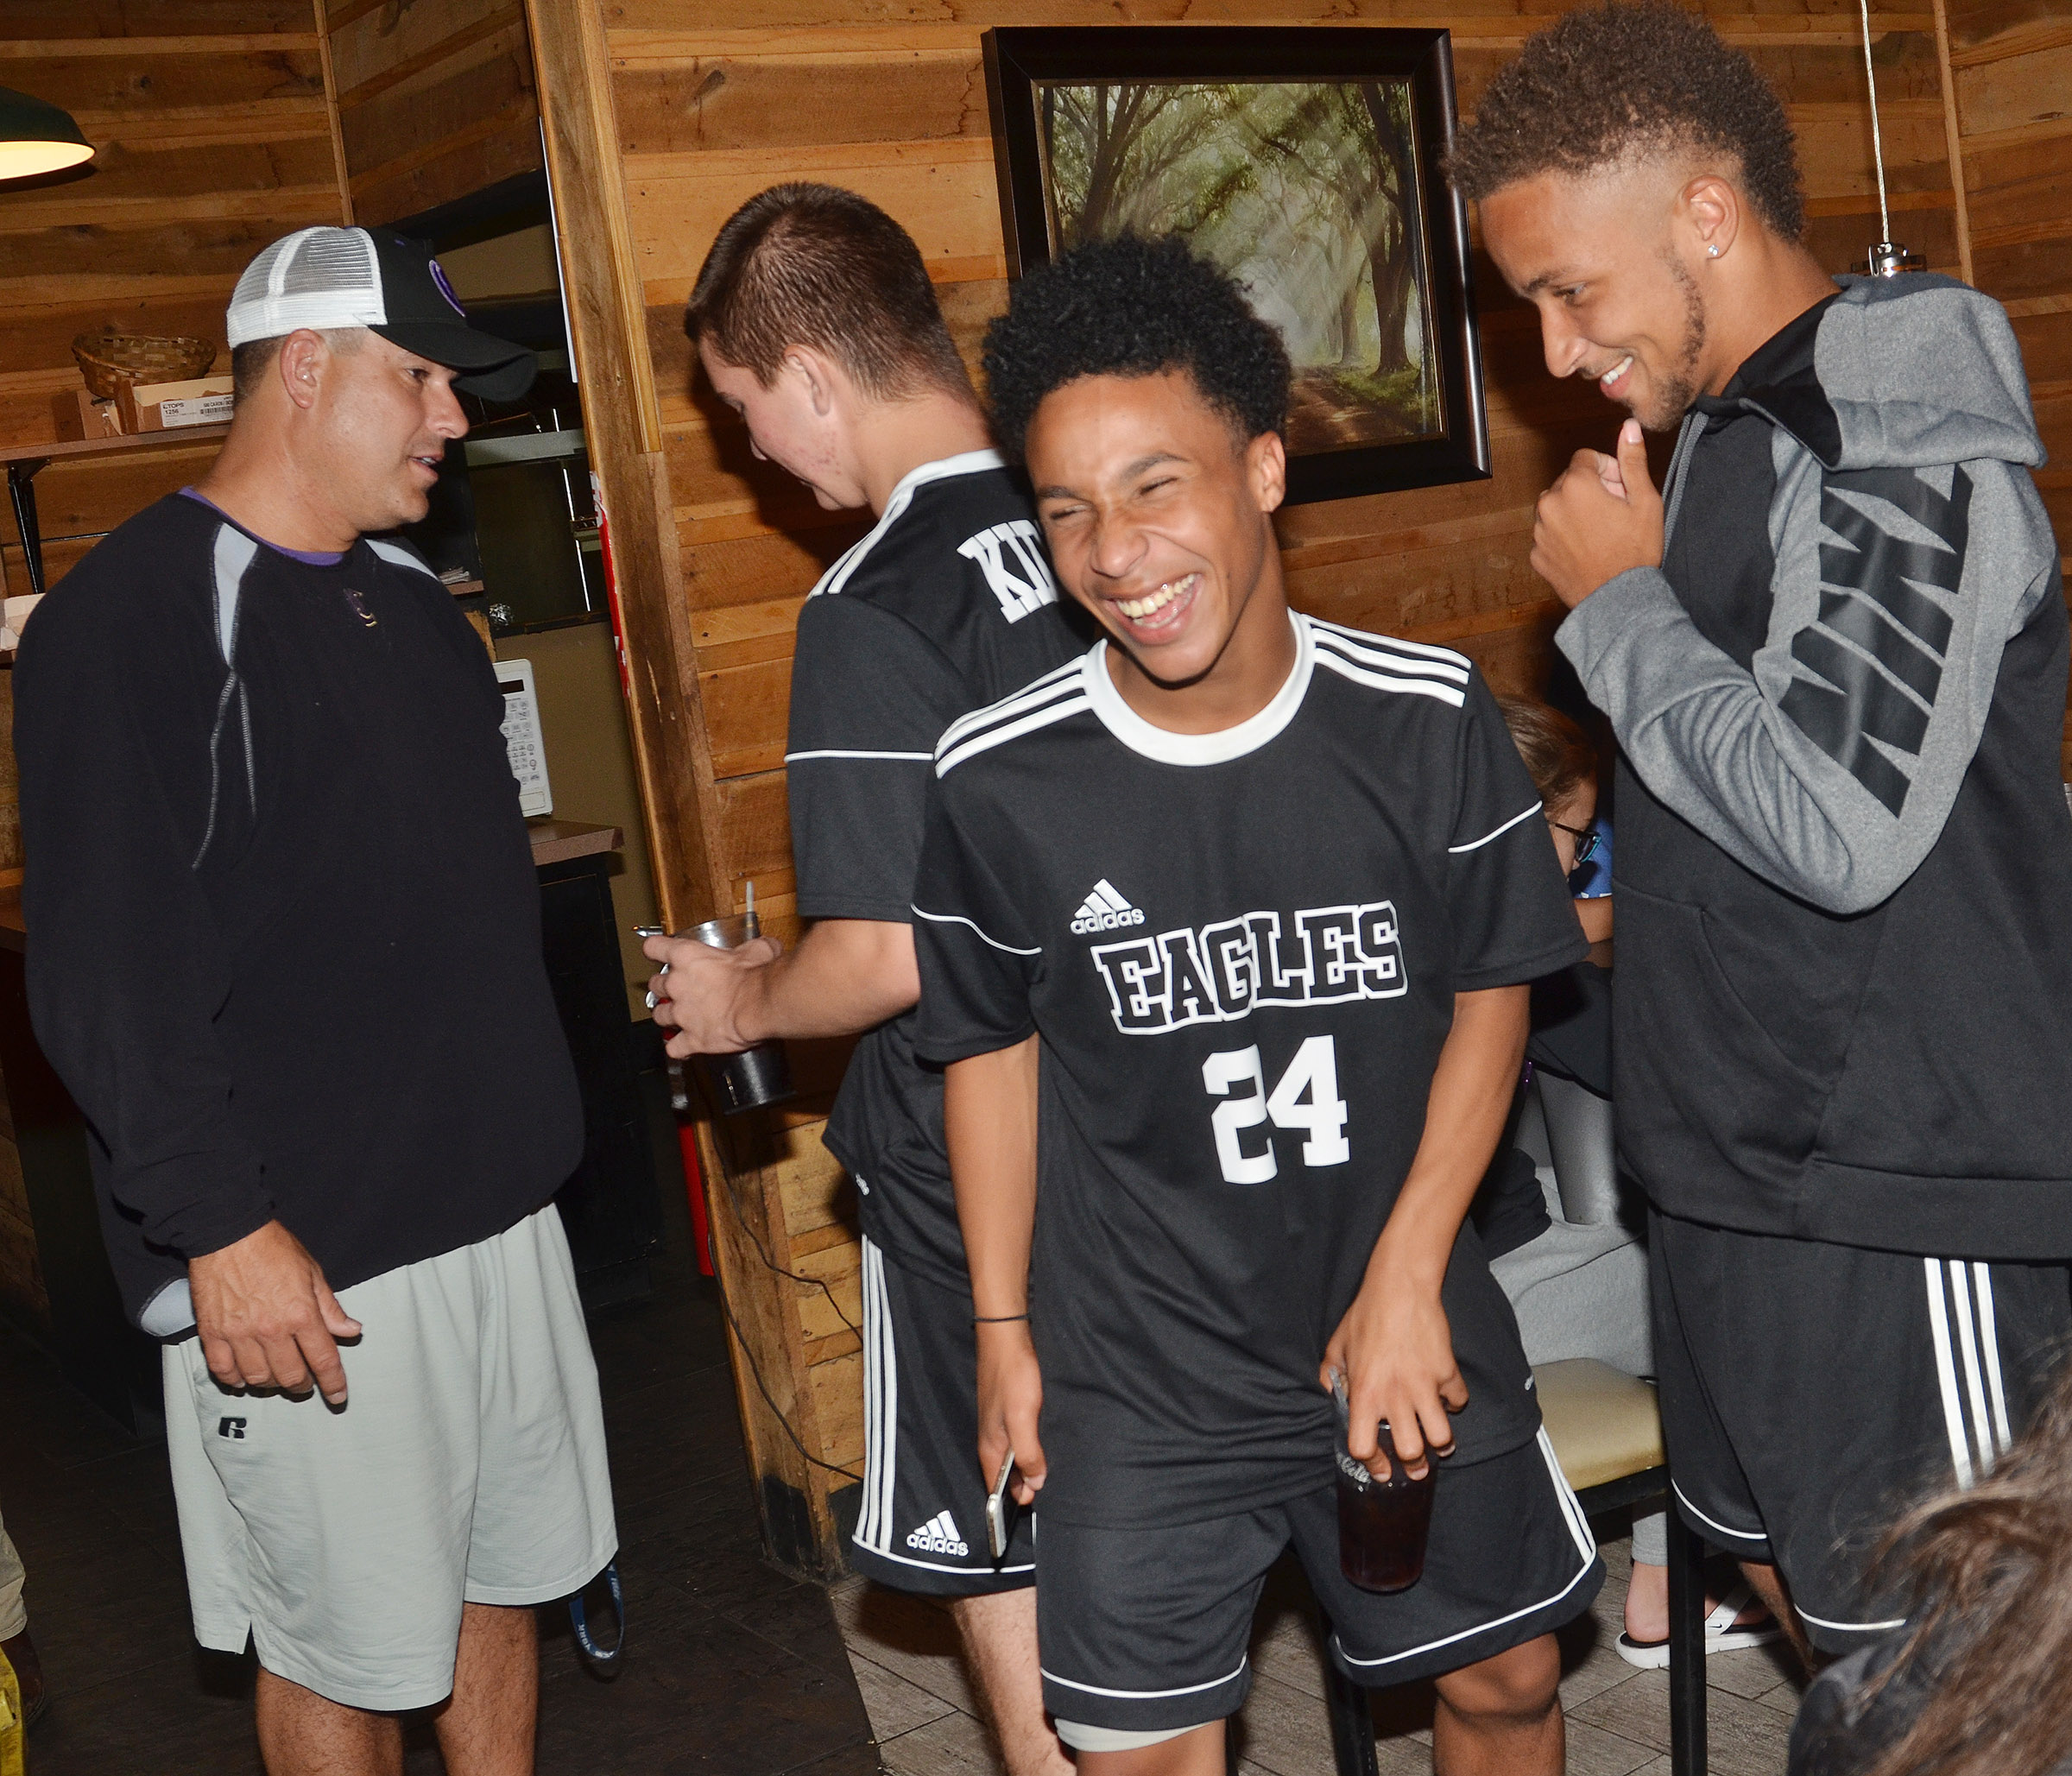 CHS junior Daniel Johnson, center, shares a laugh with senior Ethan Lay as the team celebrates at Creek Side Restaurant.